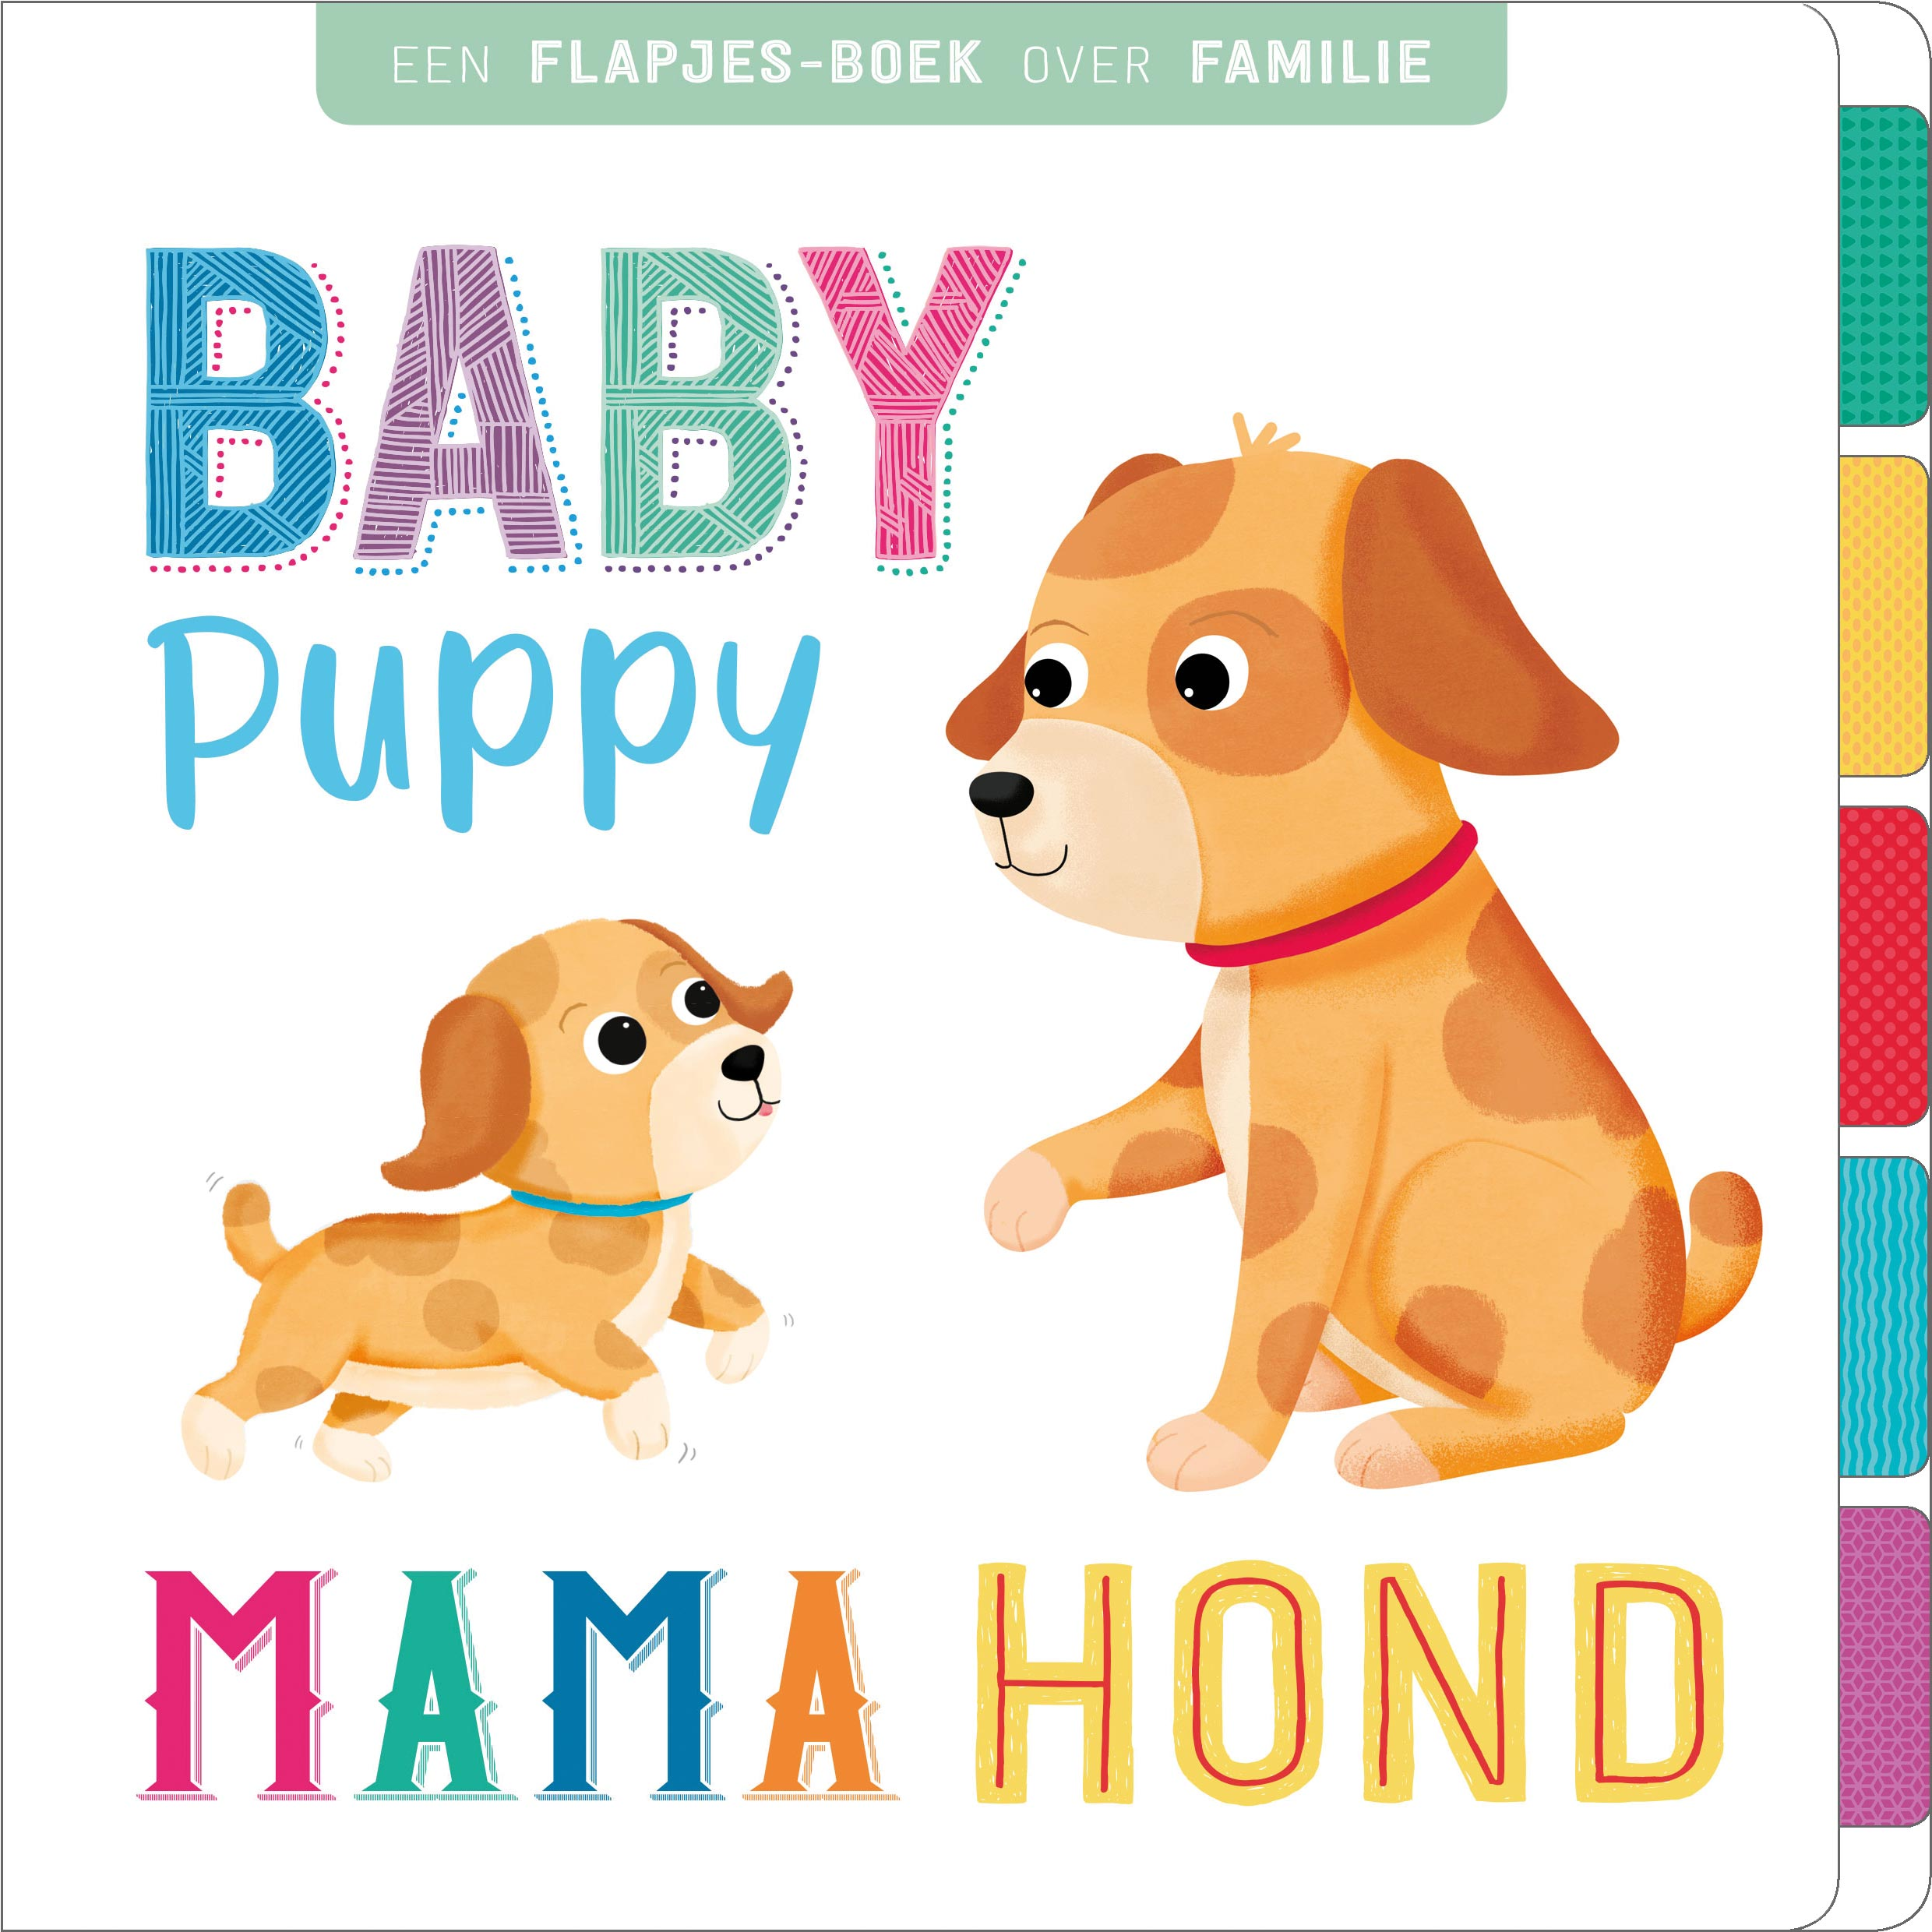 Baby puppy, mama hond - flap